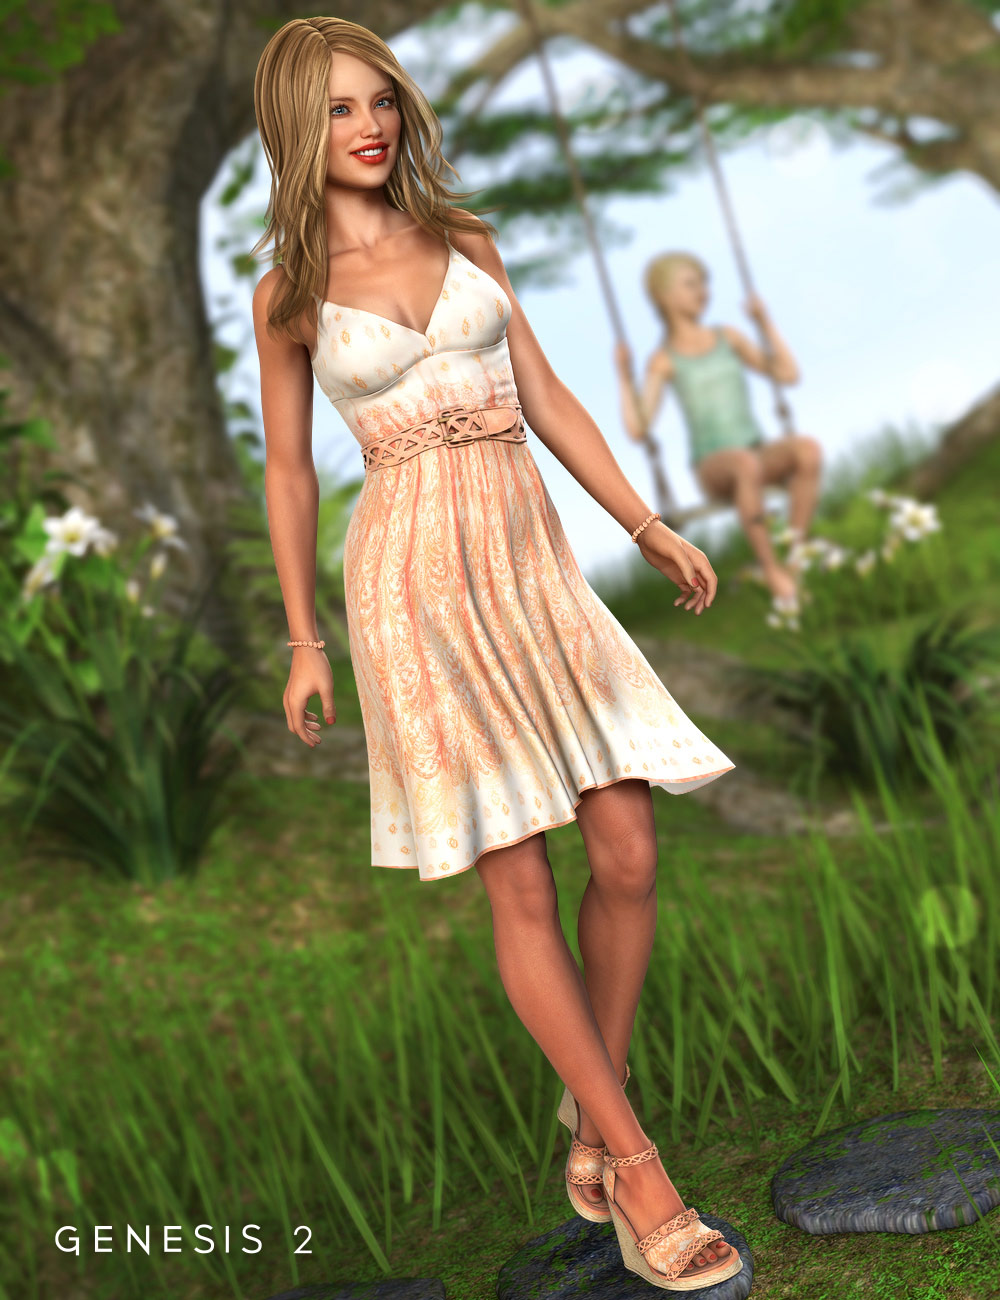 Southern Peach Sundress Outfit for Genesis 2 Female(s) by: Barbara BrundonMorris, 3D Models by Daz 3D